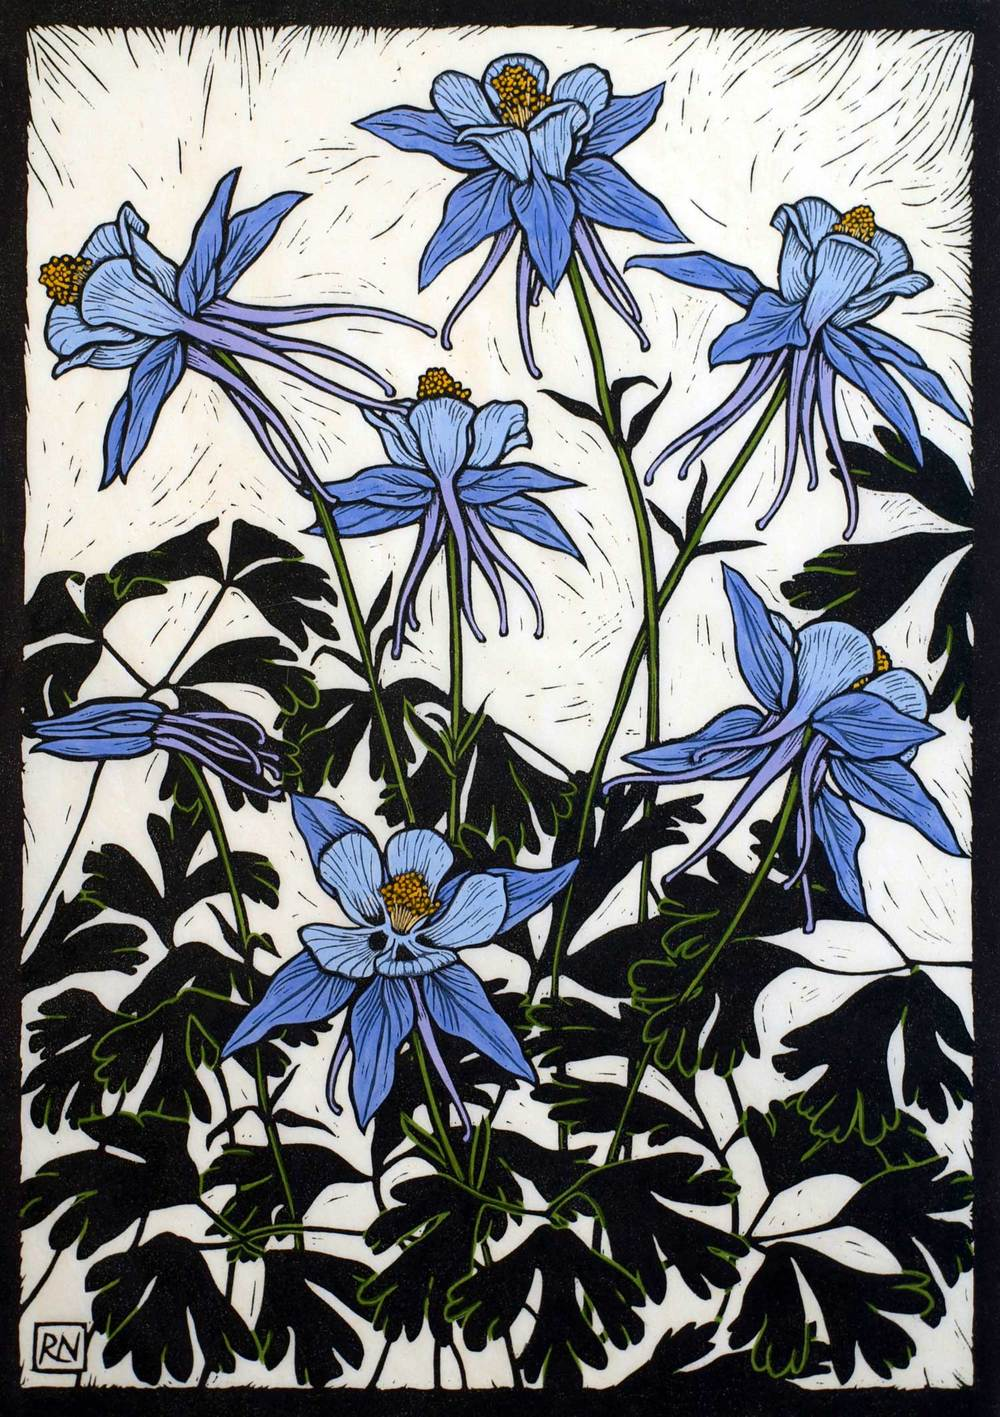 COLUMBINES  49 X 35 CM    EDITION OF 50  HAND COLOURED LINOCUT ON HANDMADE JAPANESE PAPER  $1,050